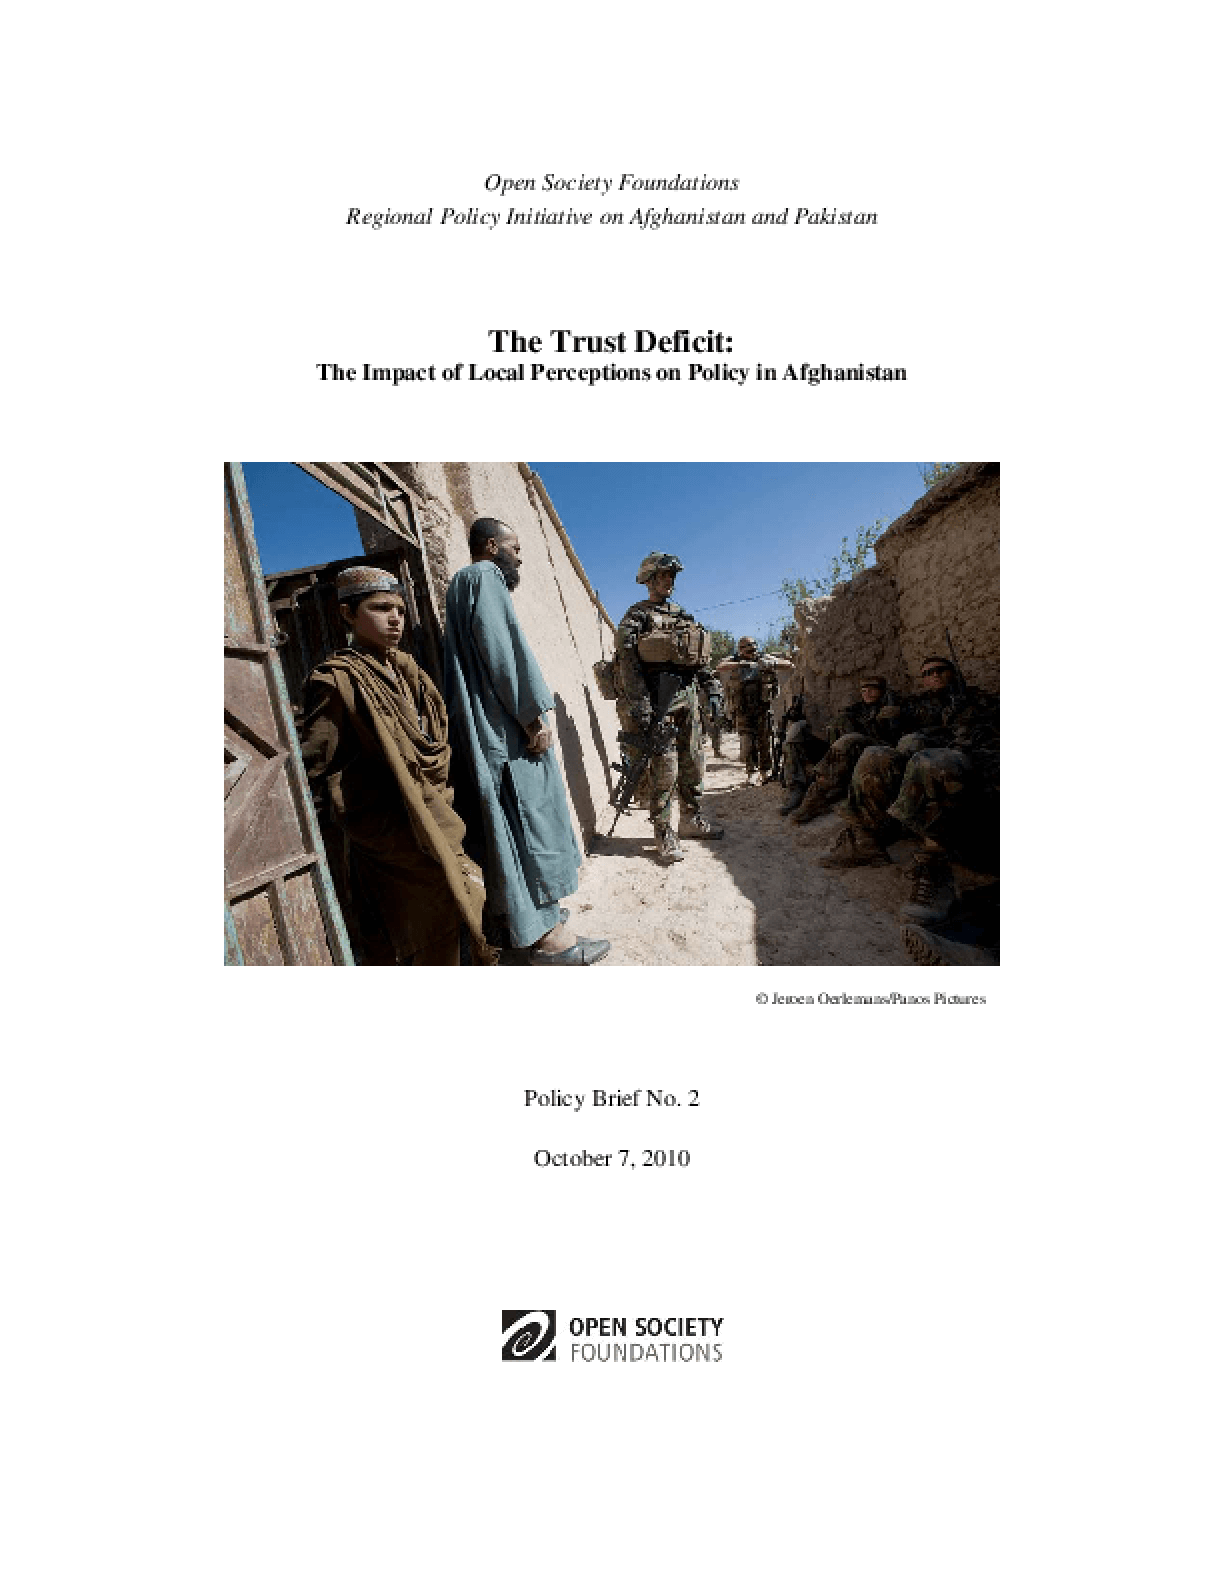 The Trust Deficit: The Impact of Local Perceptions on Policy in Afghanistan